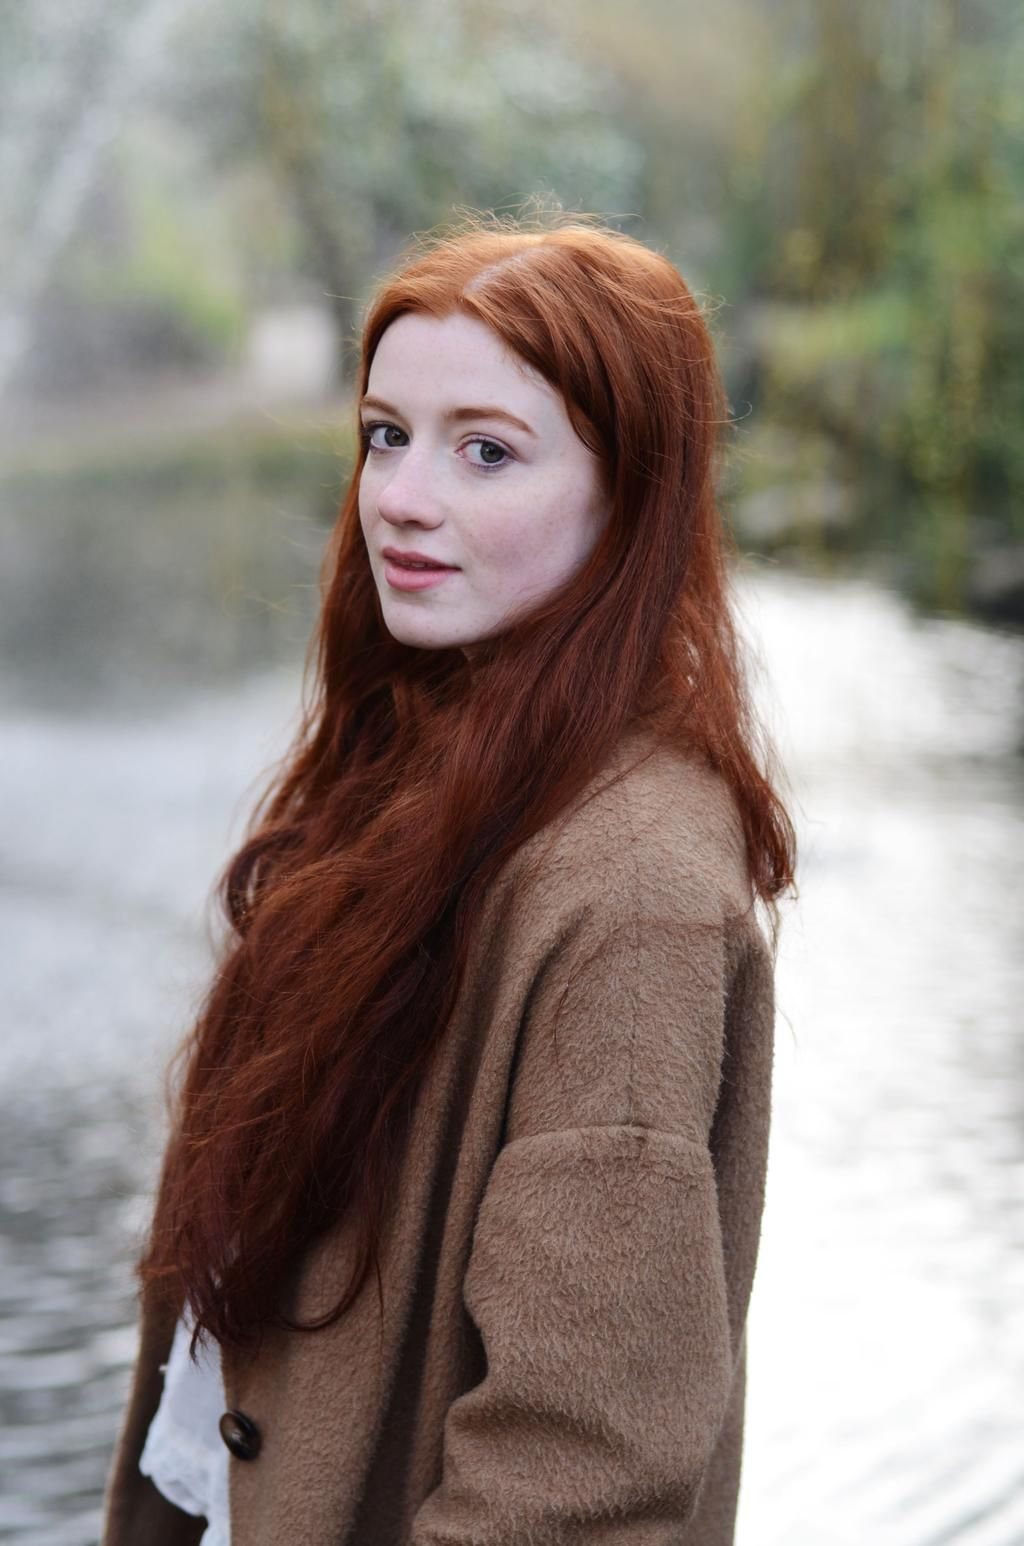 Ciara Baxendale naked (27 photos), Topless, Fappening, Selfie, underwear 2018